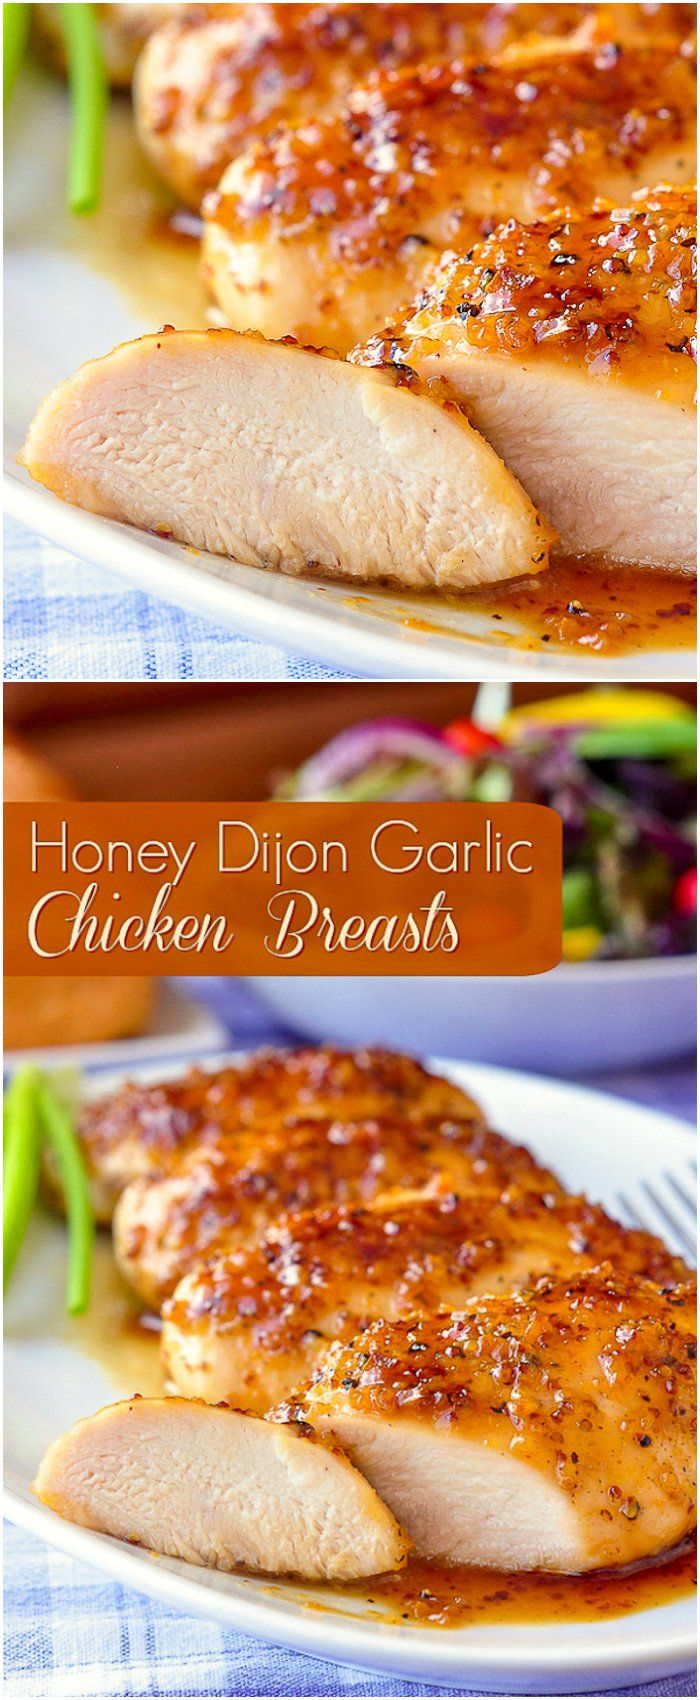 Honey Dijon Garlic Chicken Breasts - boneless skinless chicken breasts quickly baked in an intensely flavoured honey, garlic and Dijon mustard glaze.